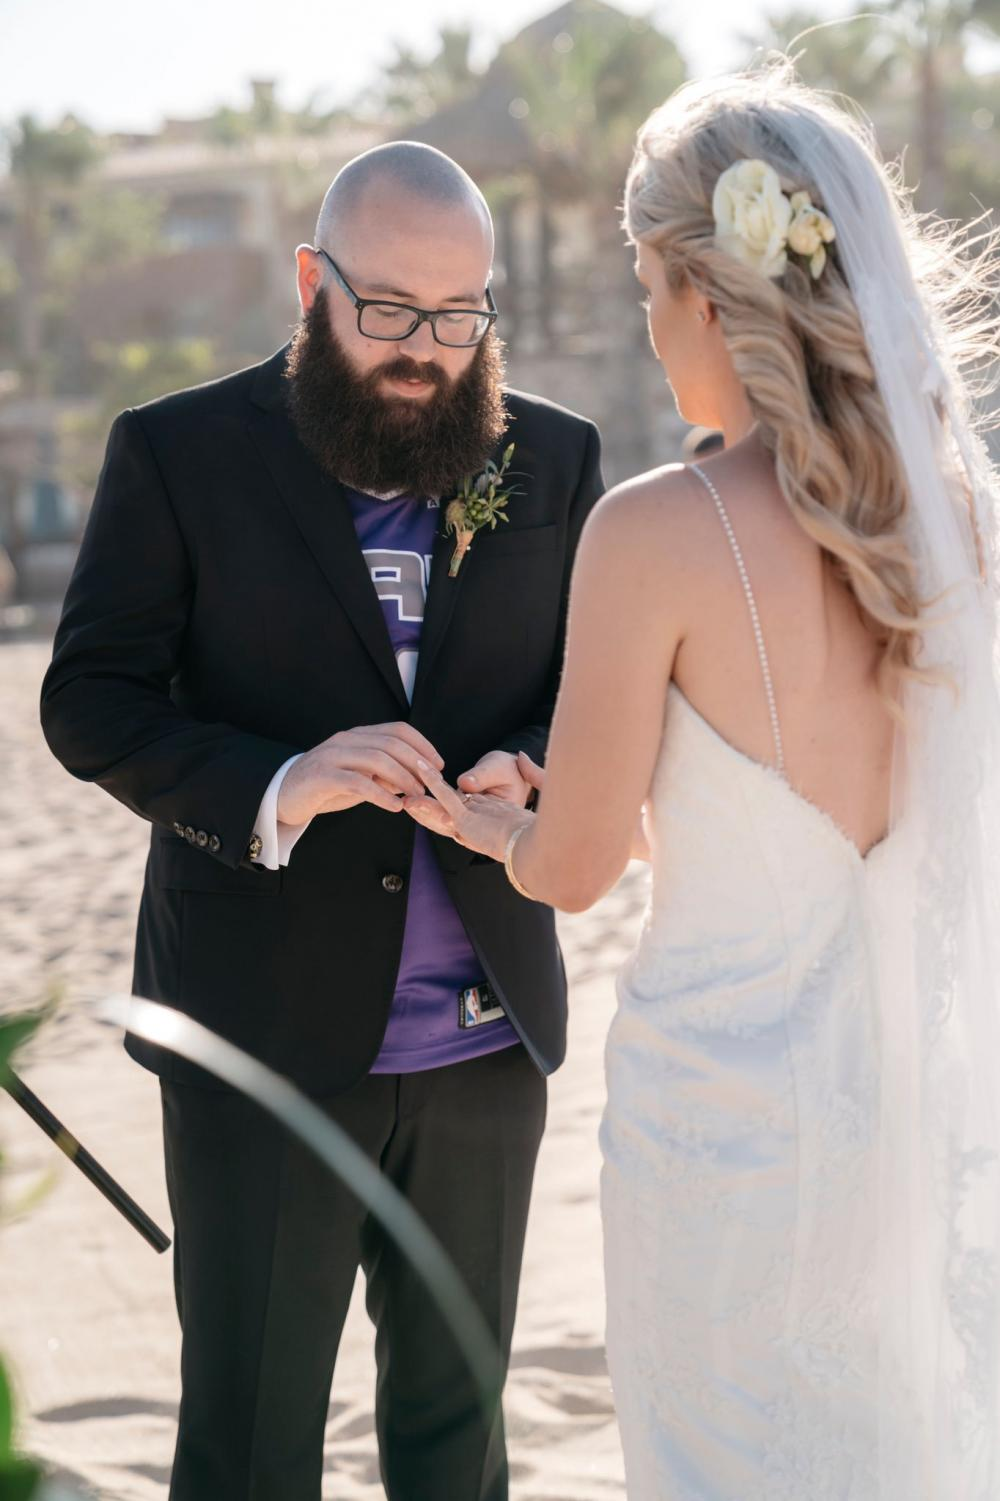 State+Hornet+sports+features+reporter+Richard+Ivanowski+puts+a+ring+on+his+wife+Kate%27s+finger+at+his+wedding+on+Saturday%2C+June+15+in+Cabo+San+Lucas%2C+Mexico.